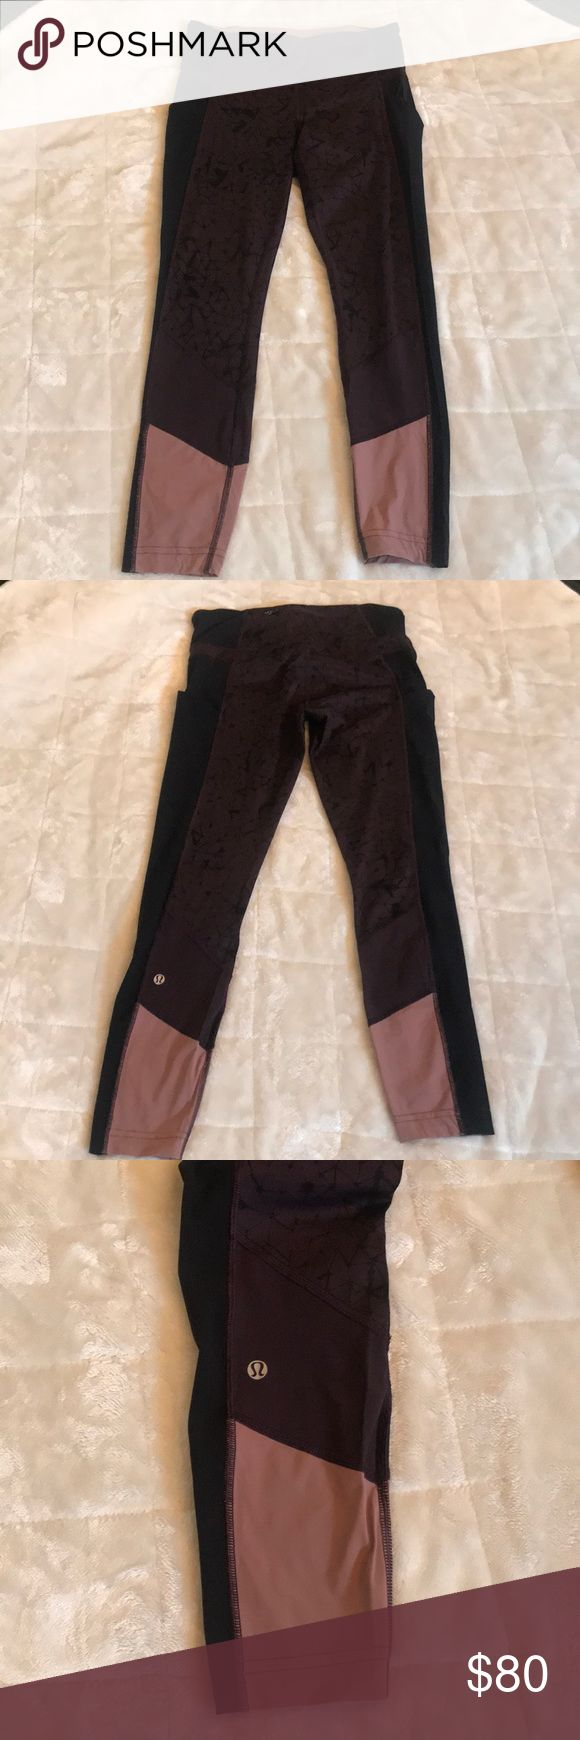 🍋Lululemon🍋 Speed 7/8 Tights 🌟EUC🌟Size 6 Full on Luxtreme. Very rare pattern and style.                        🖤DISCONTINUED🖤 2 side pockets, 2 front hidden key pockets and back zipper pocket. No holes, pilling, stains or seams unraveling. These are in perfect condition. Always washed to Lulu specs and hung dry. Non smoking home.  All of my 🍋Lululemon🍋sales include a FREE brand new red tote bag 🛍You choose small or large❤️ lululemon athletica Pants Leggings